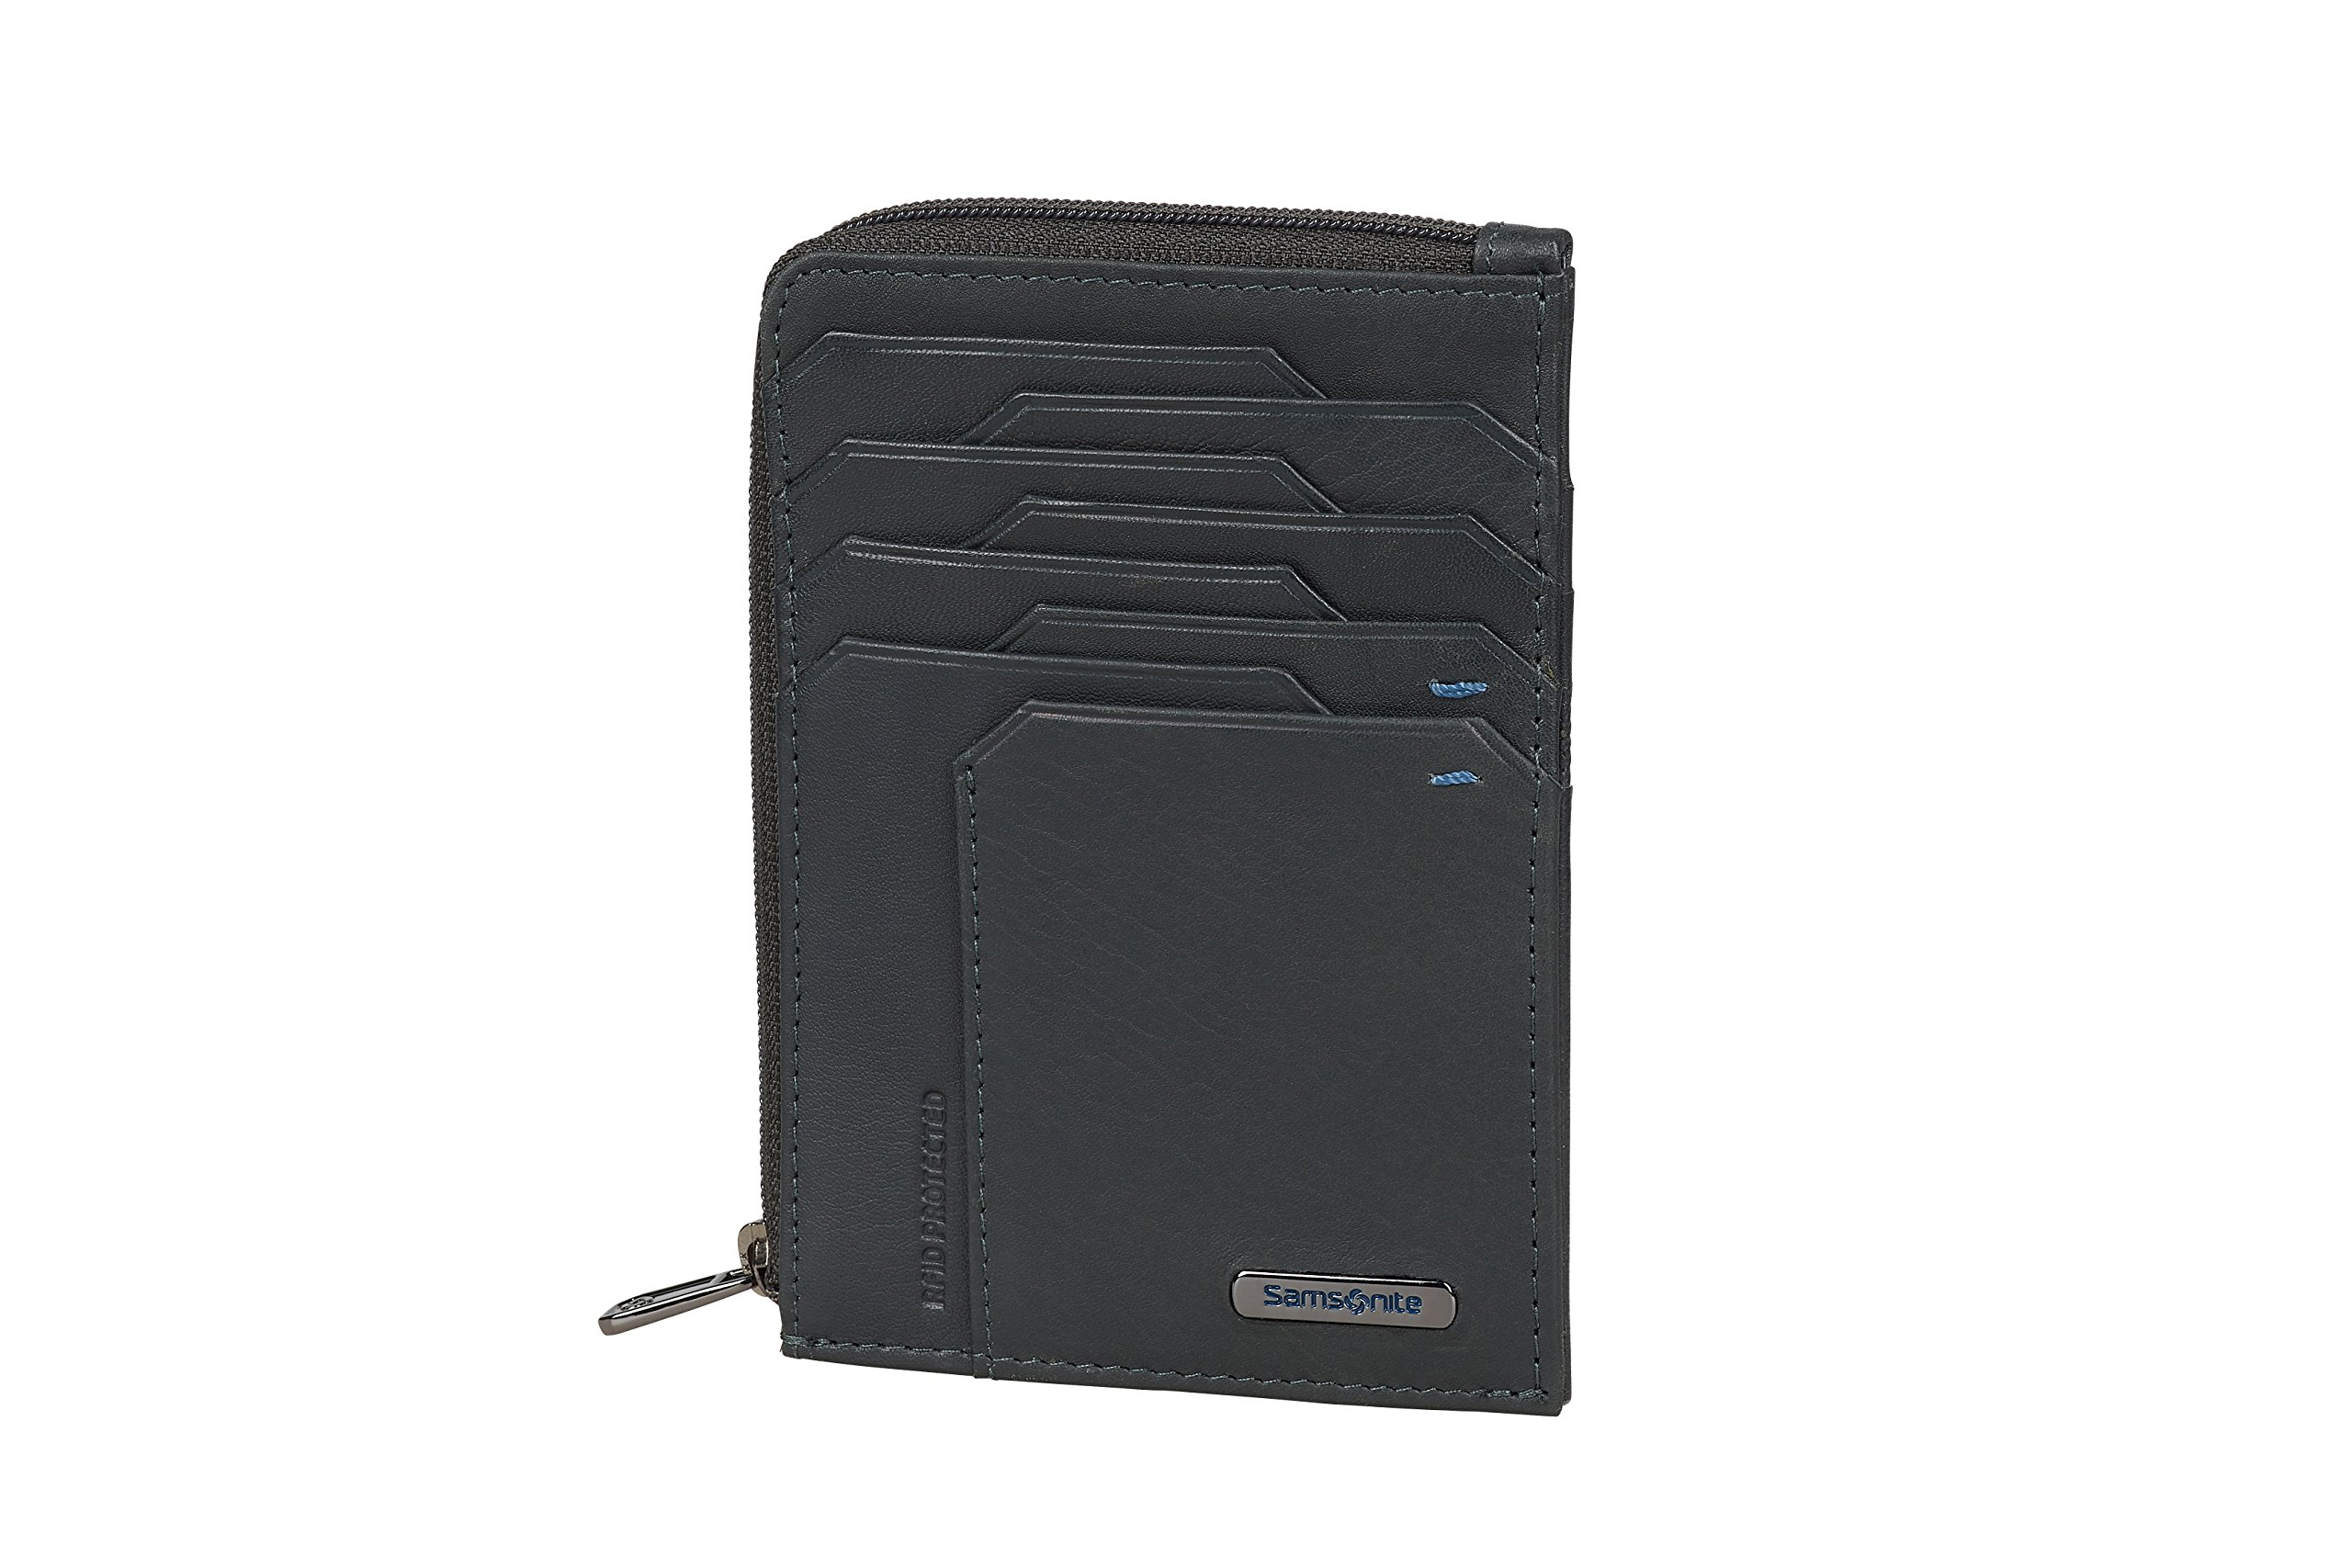 Spectrolite SLG Small Wallet for 4 Creditcards 12 cm Night Blue//Black 0 liters 2 Compartments Credit Card Case Blue